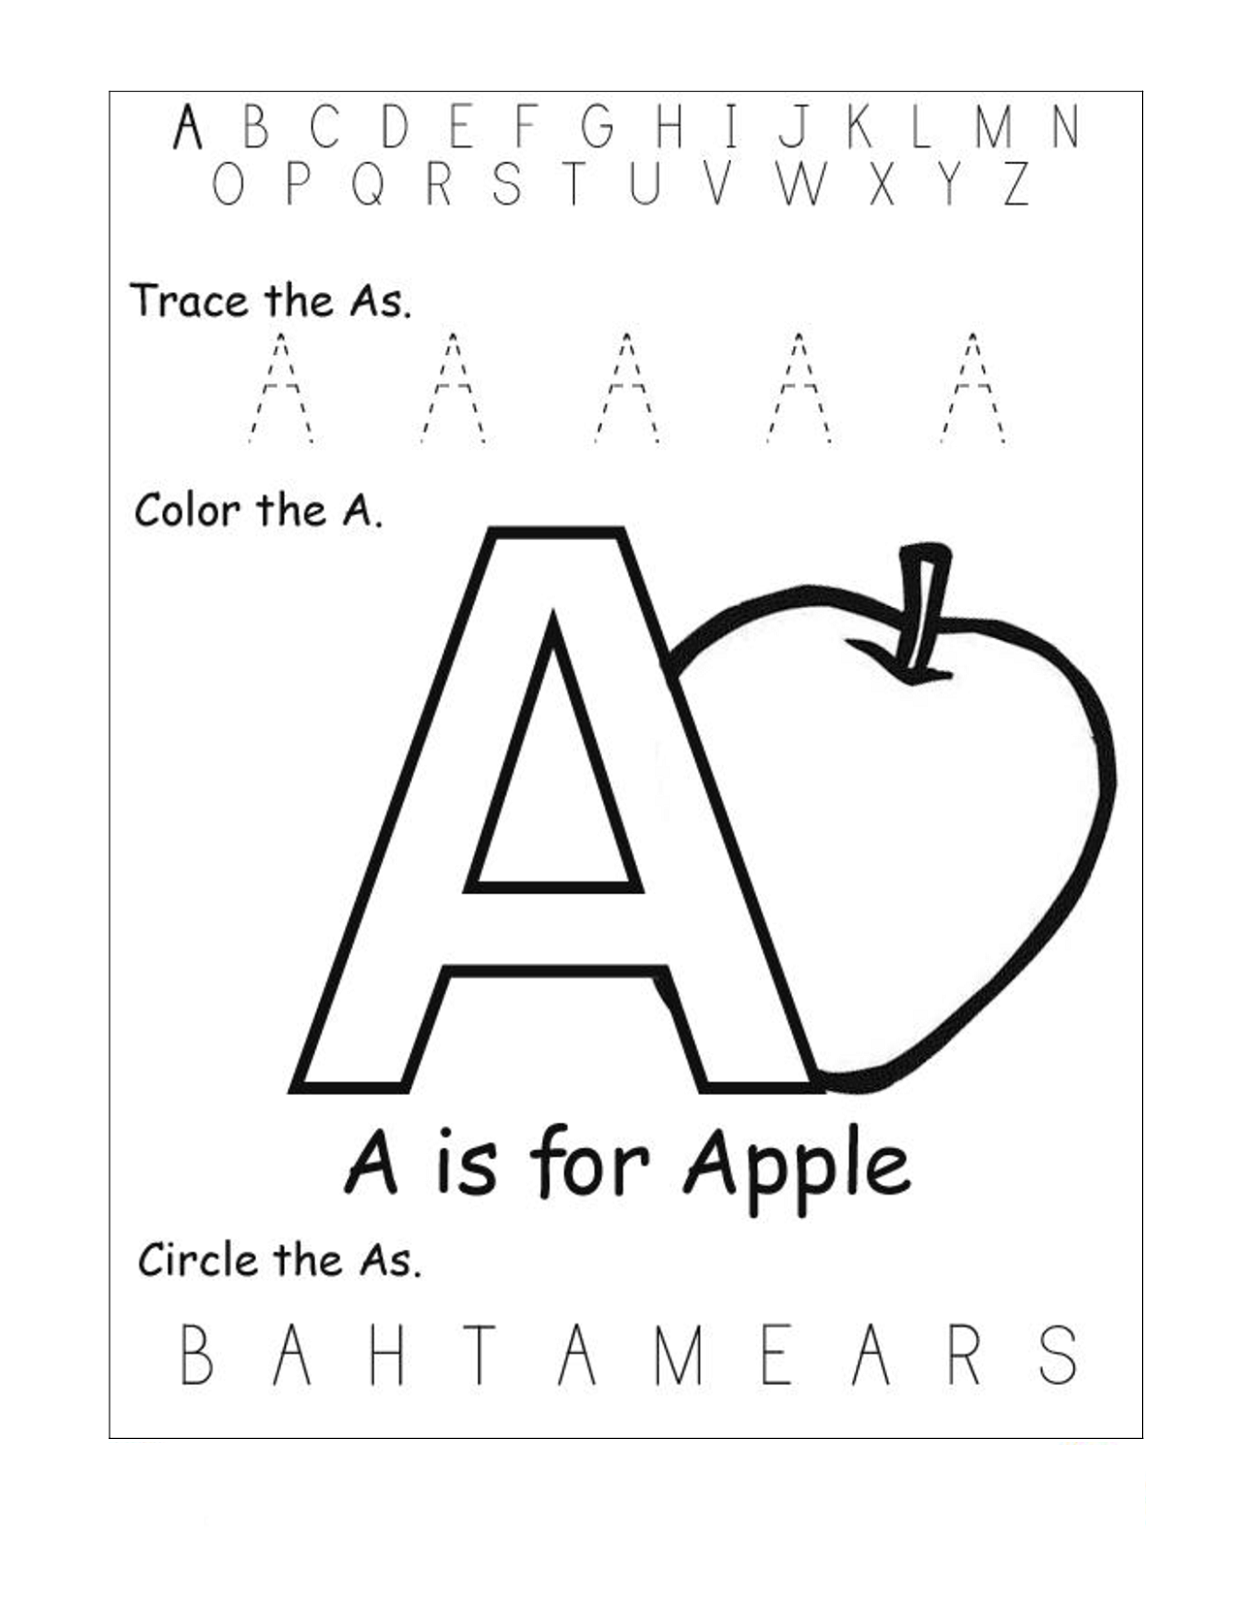 Printables Printable Abc Worksheets For Pre-k printables pre k abc worksheets safarmediapps free for activity shelter letter a